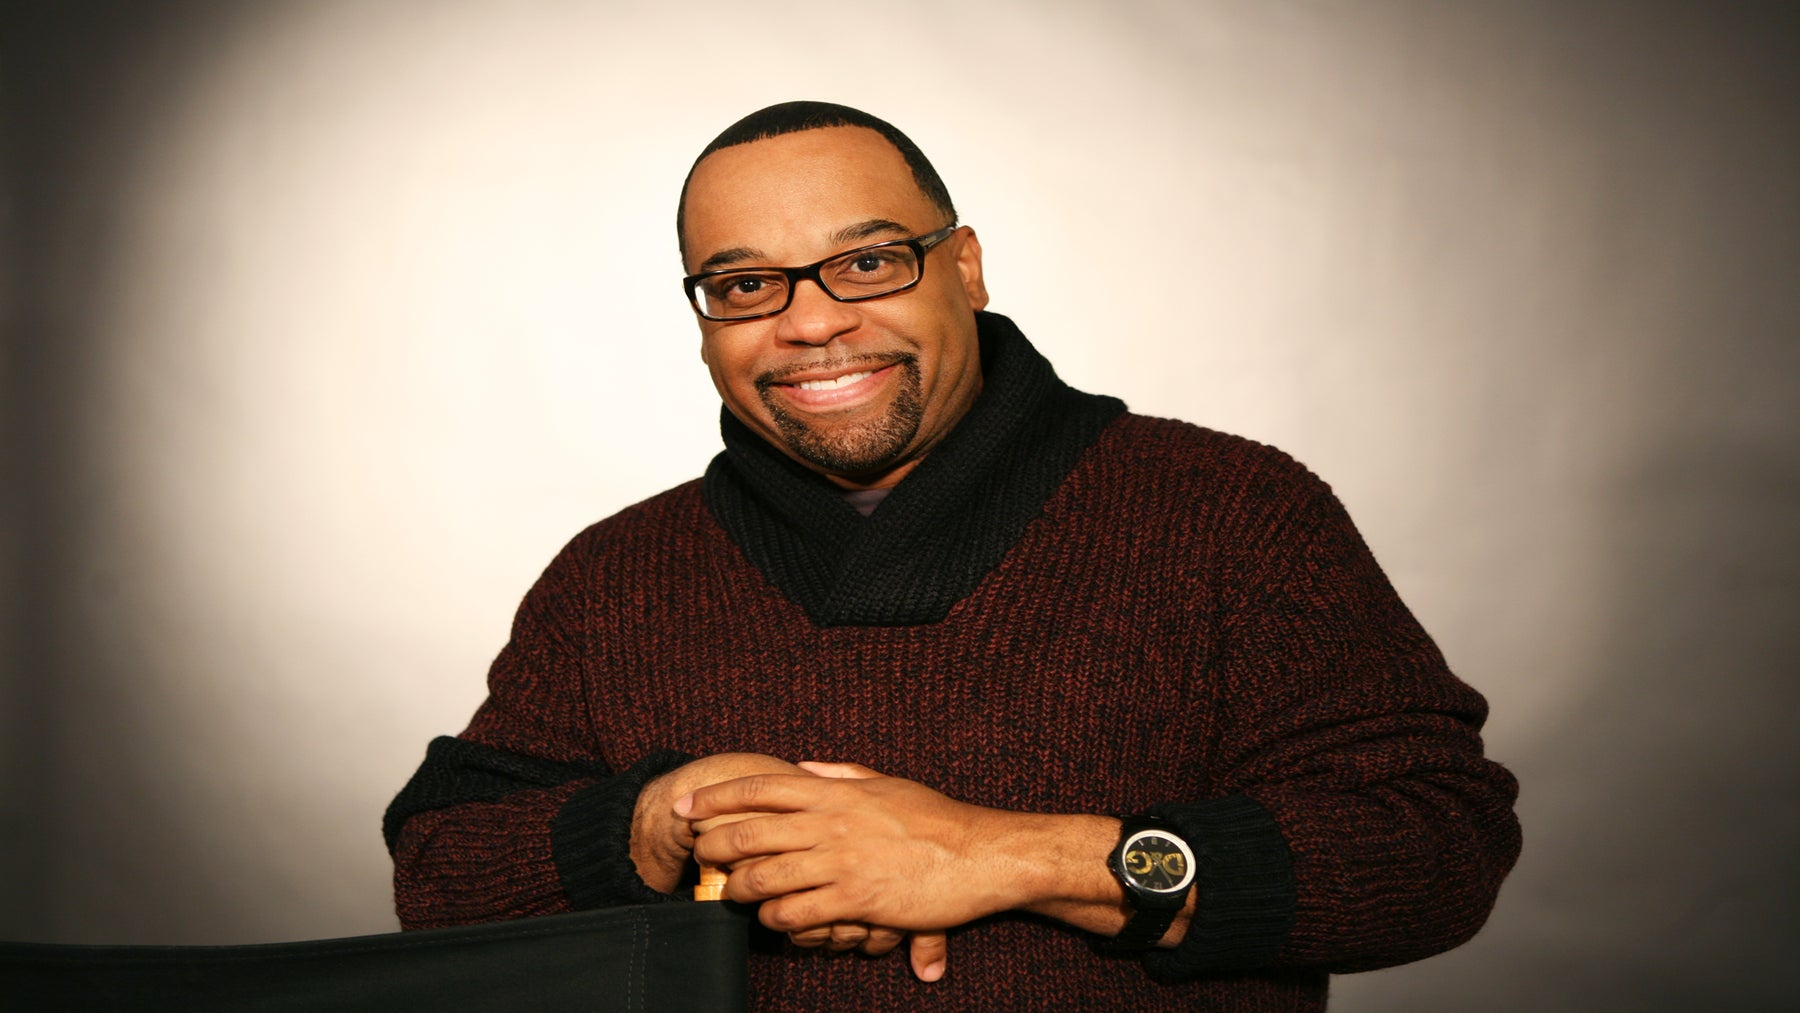 Gospel Singer Kurt Carr on His New Album, and Being Honored at the Stellar Awards